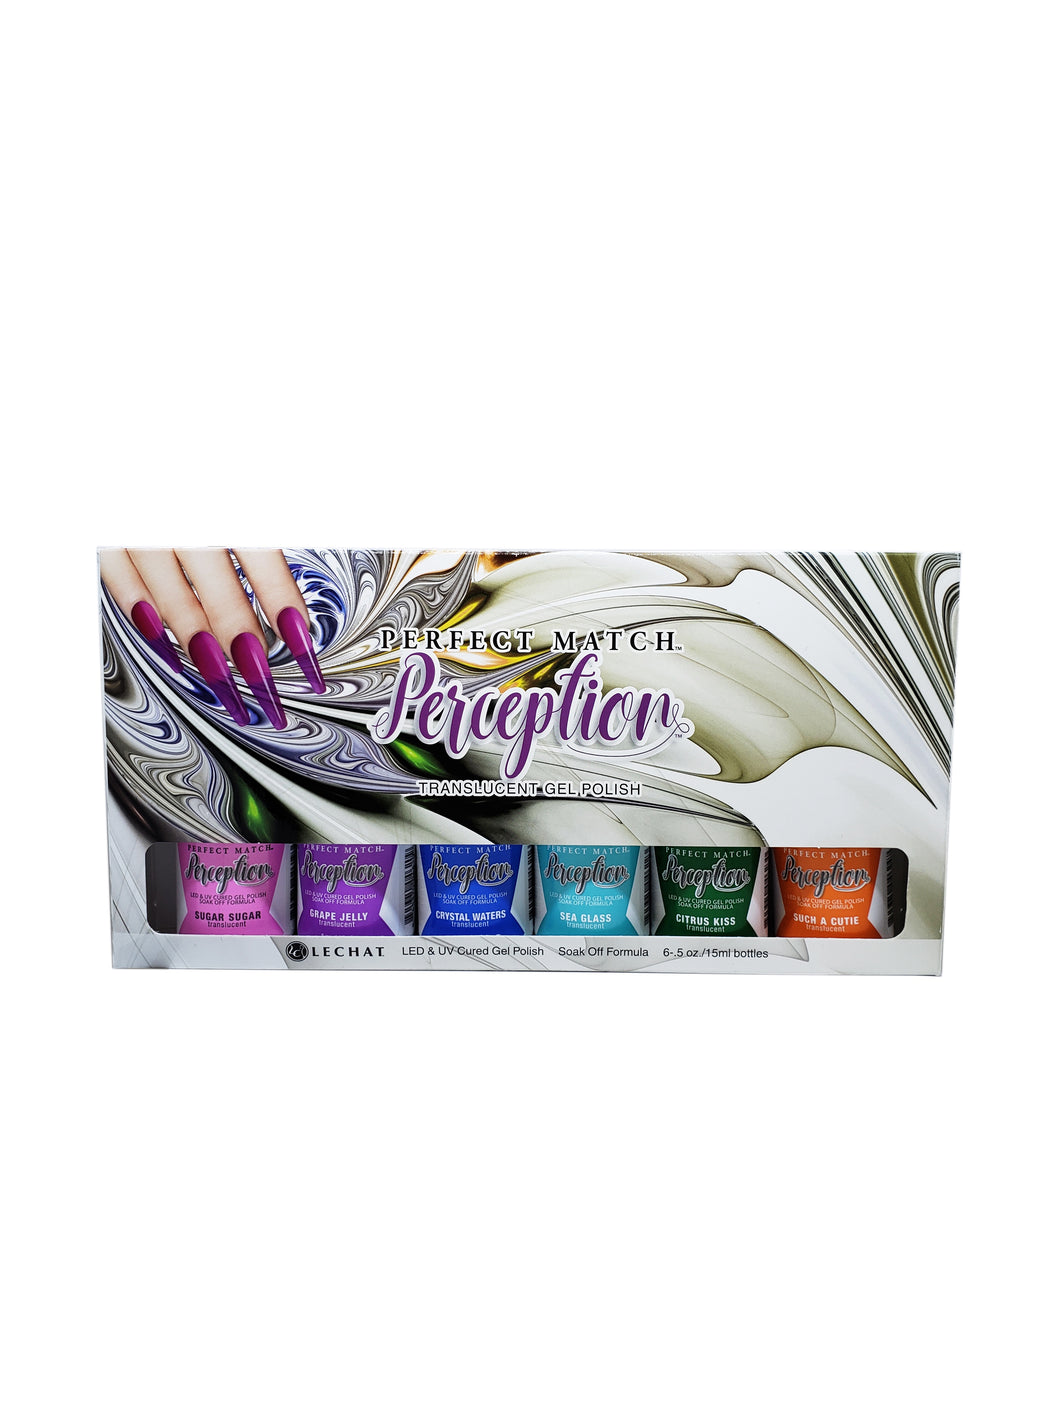 Perfect Match Perception Translucent GEL SET 01-Beauty Zone Nail Supply